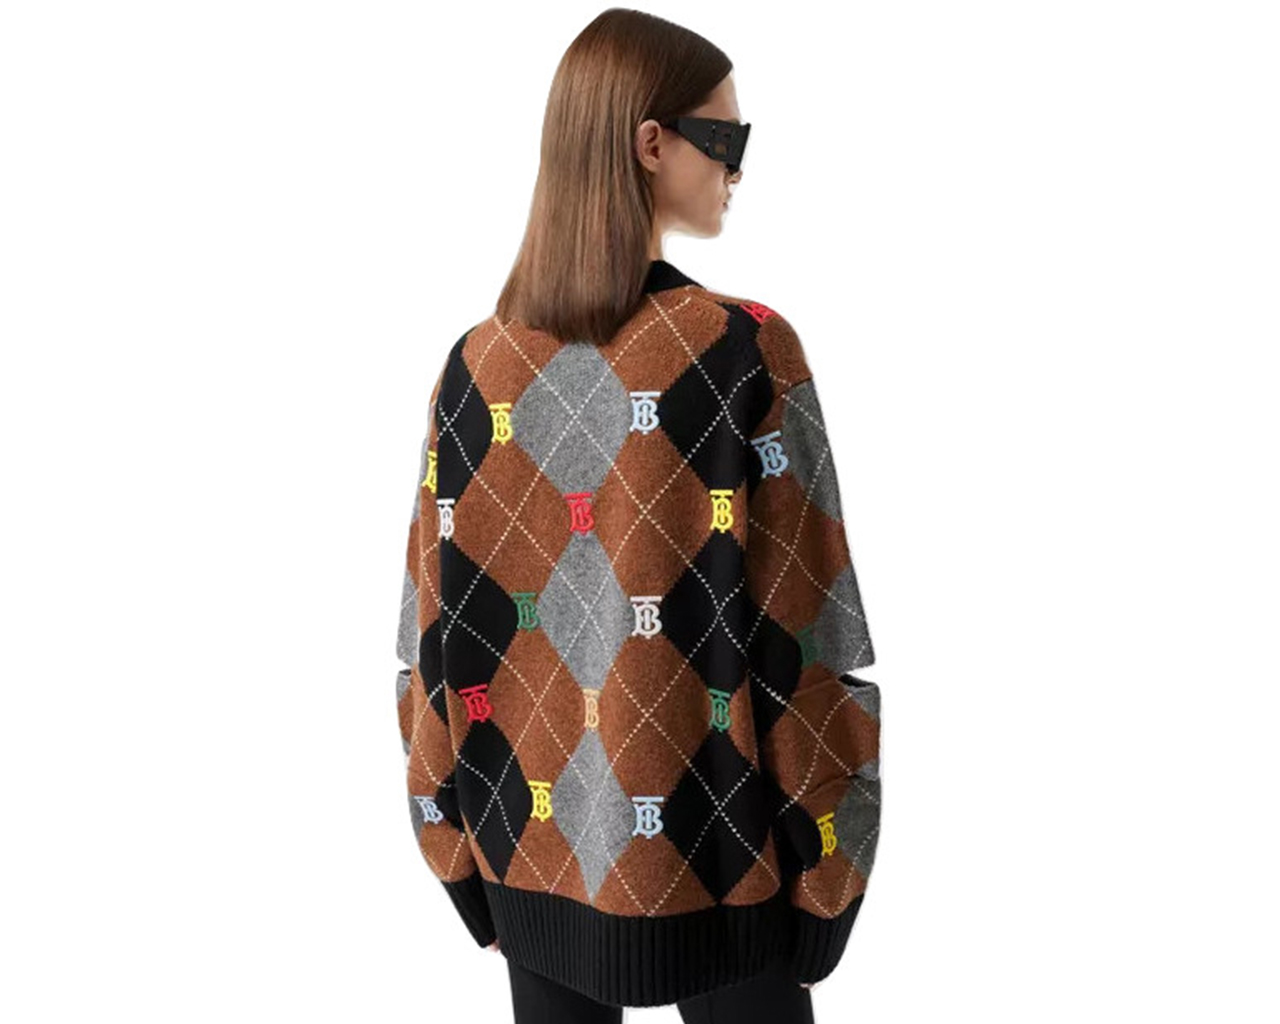 Burberry B Series Sweater